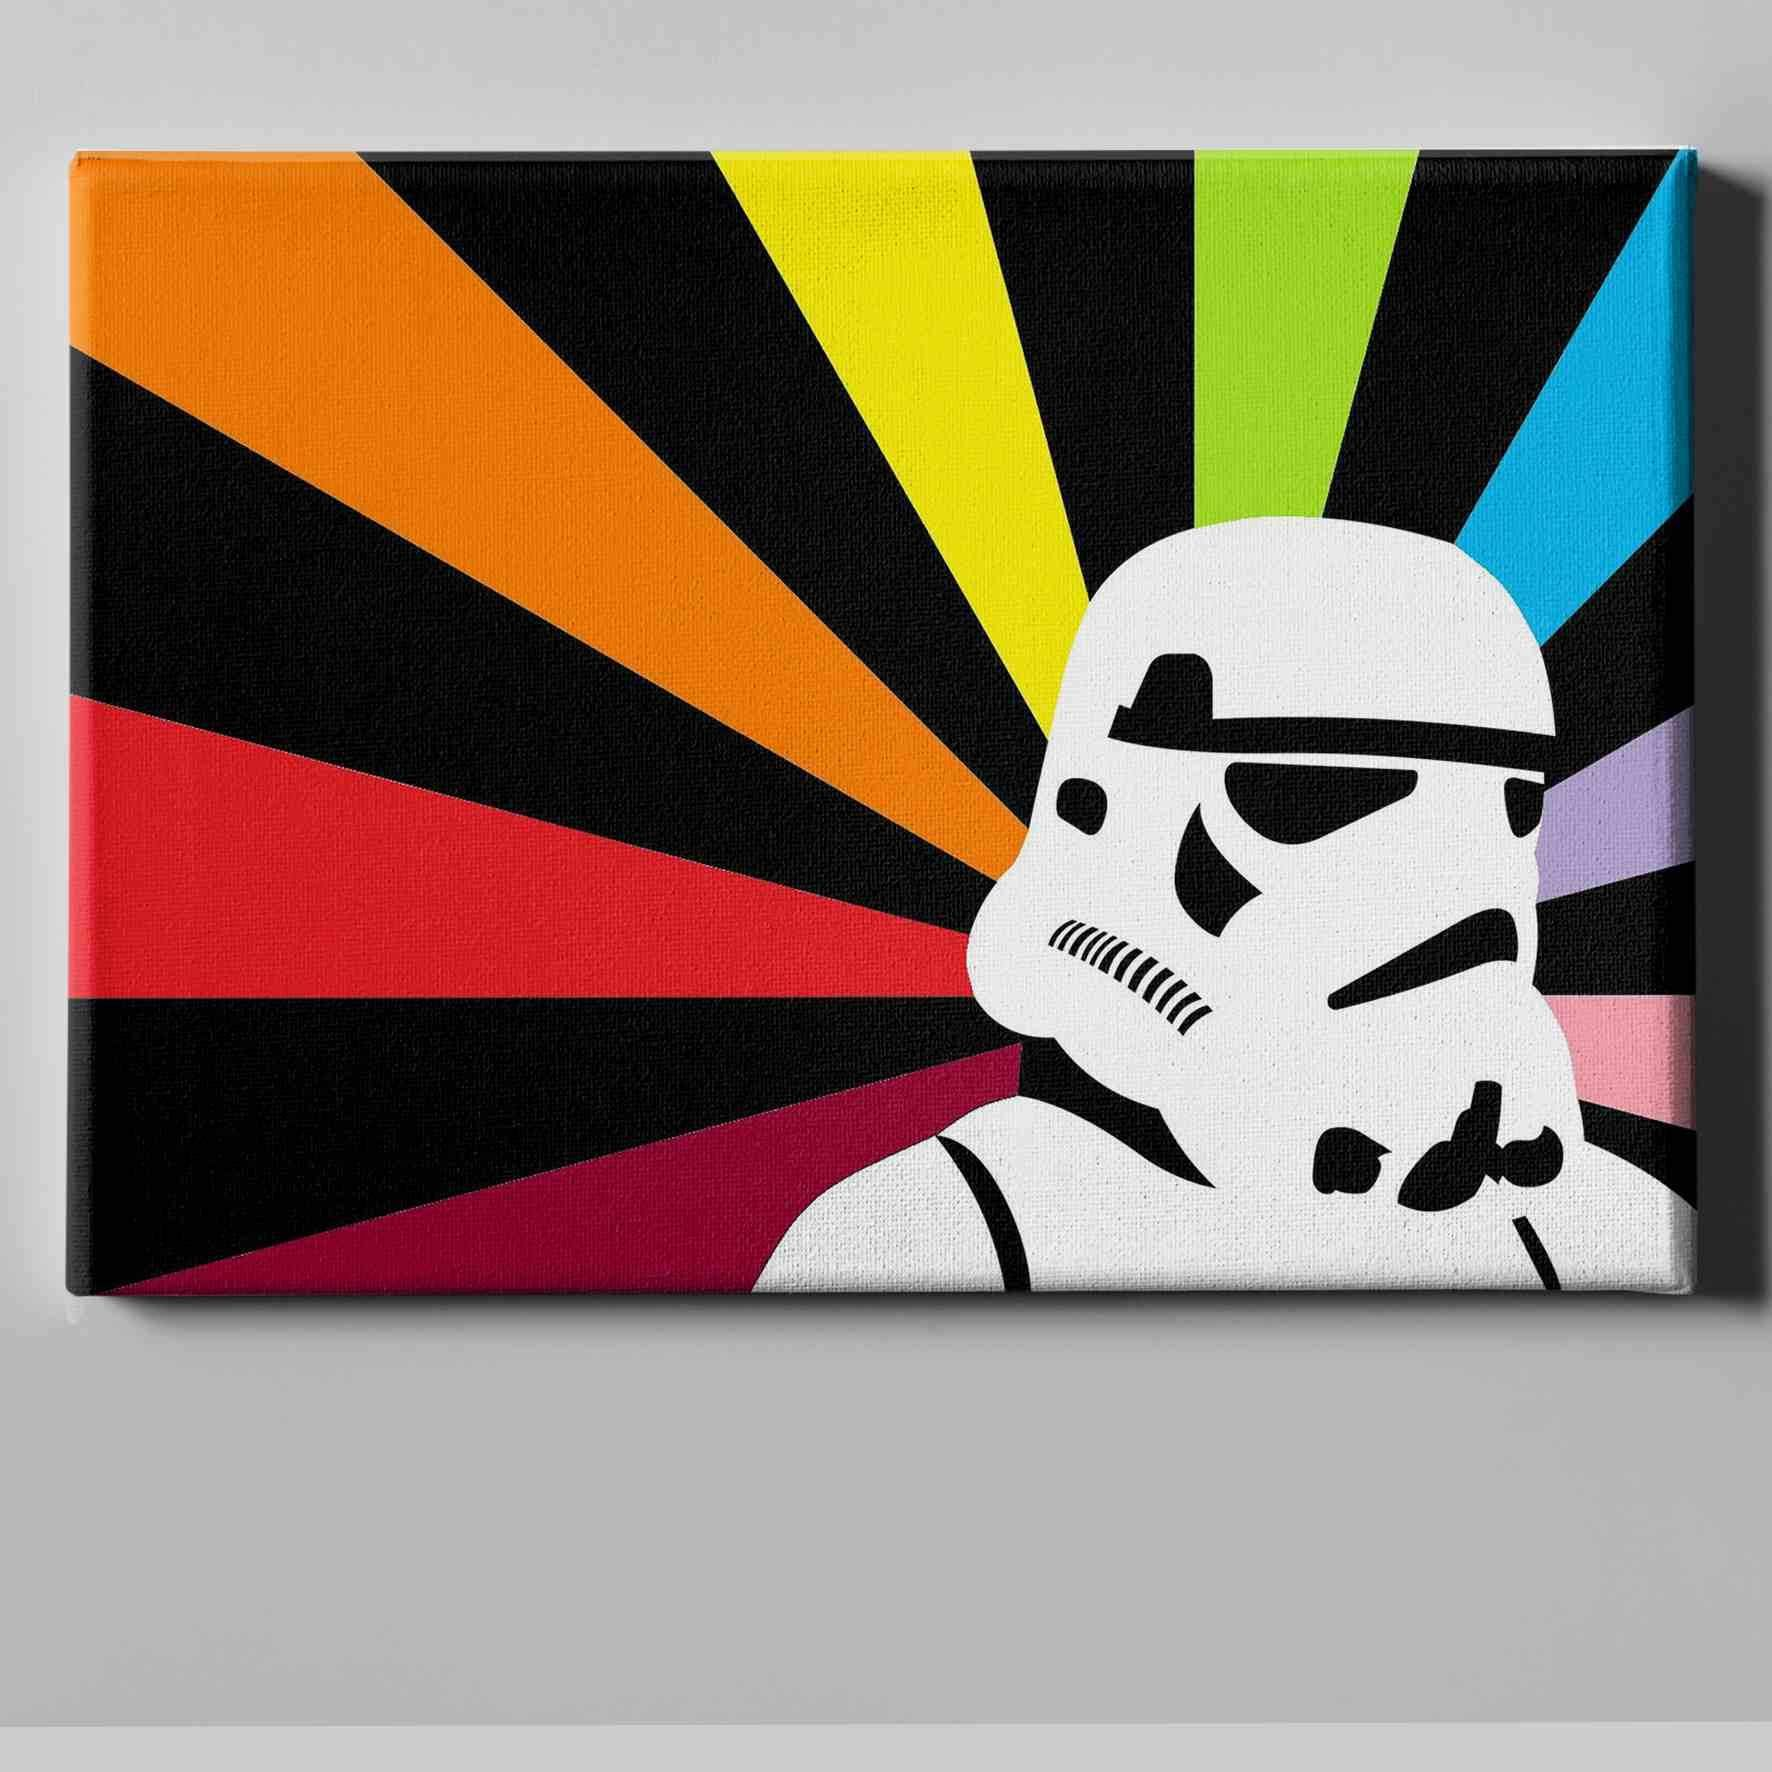 Star Wars Storm Trooper 5 Star wars painting, Star